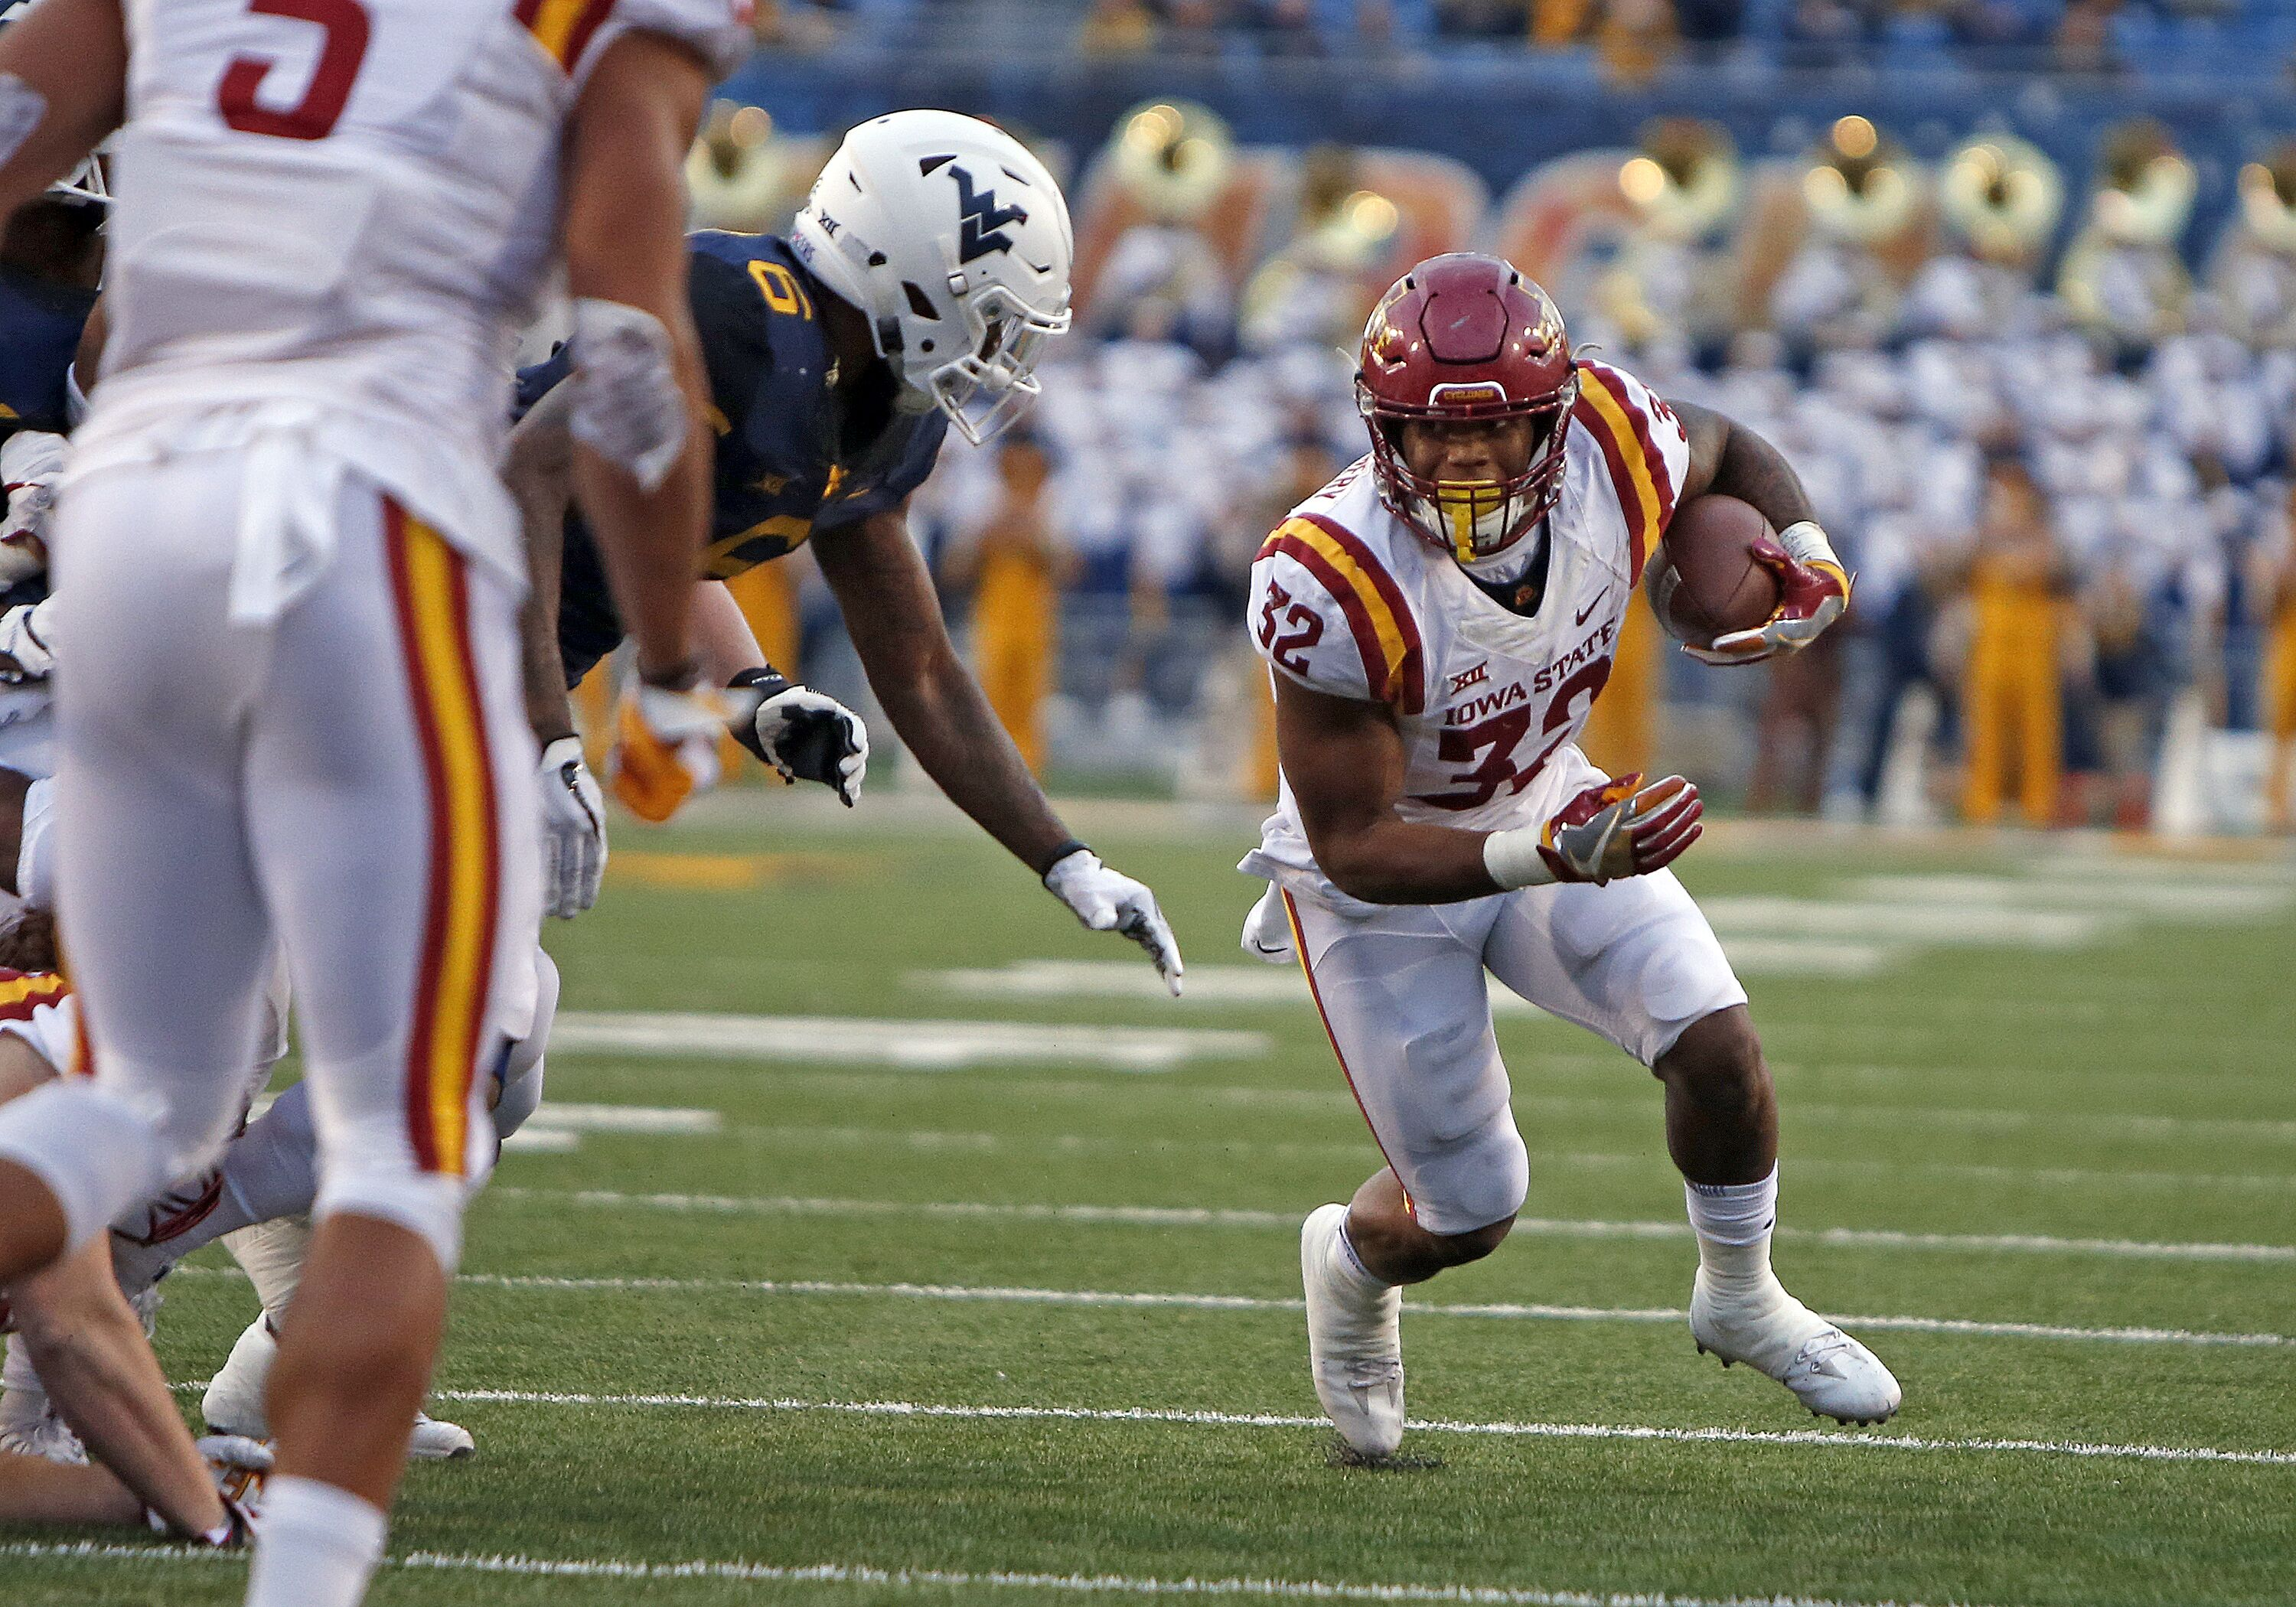 870245414-iowa-state-v-west-virginia.jpg